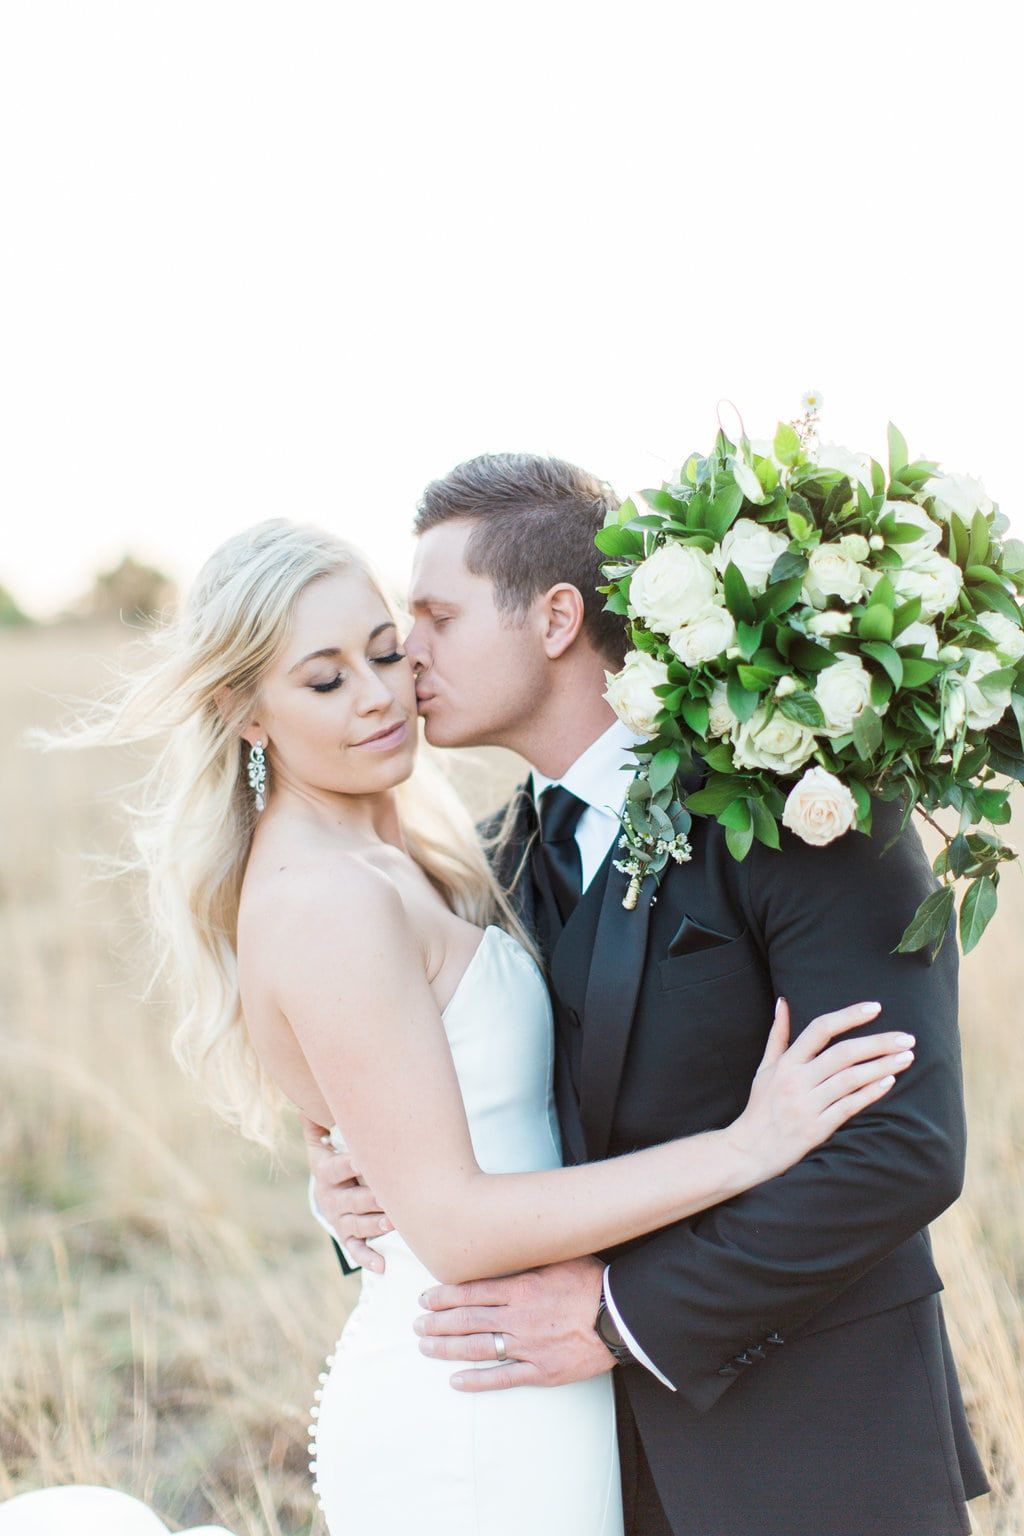 Modern Romantic Wedding at White Light by Grace Studios Photography | SouthBound Bride